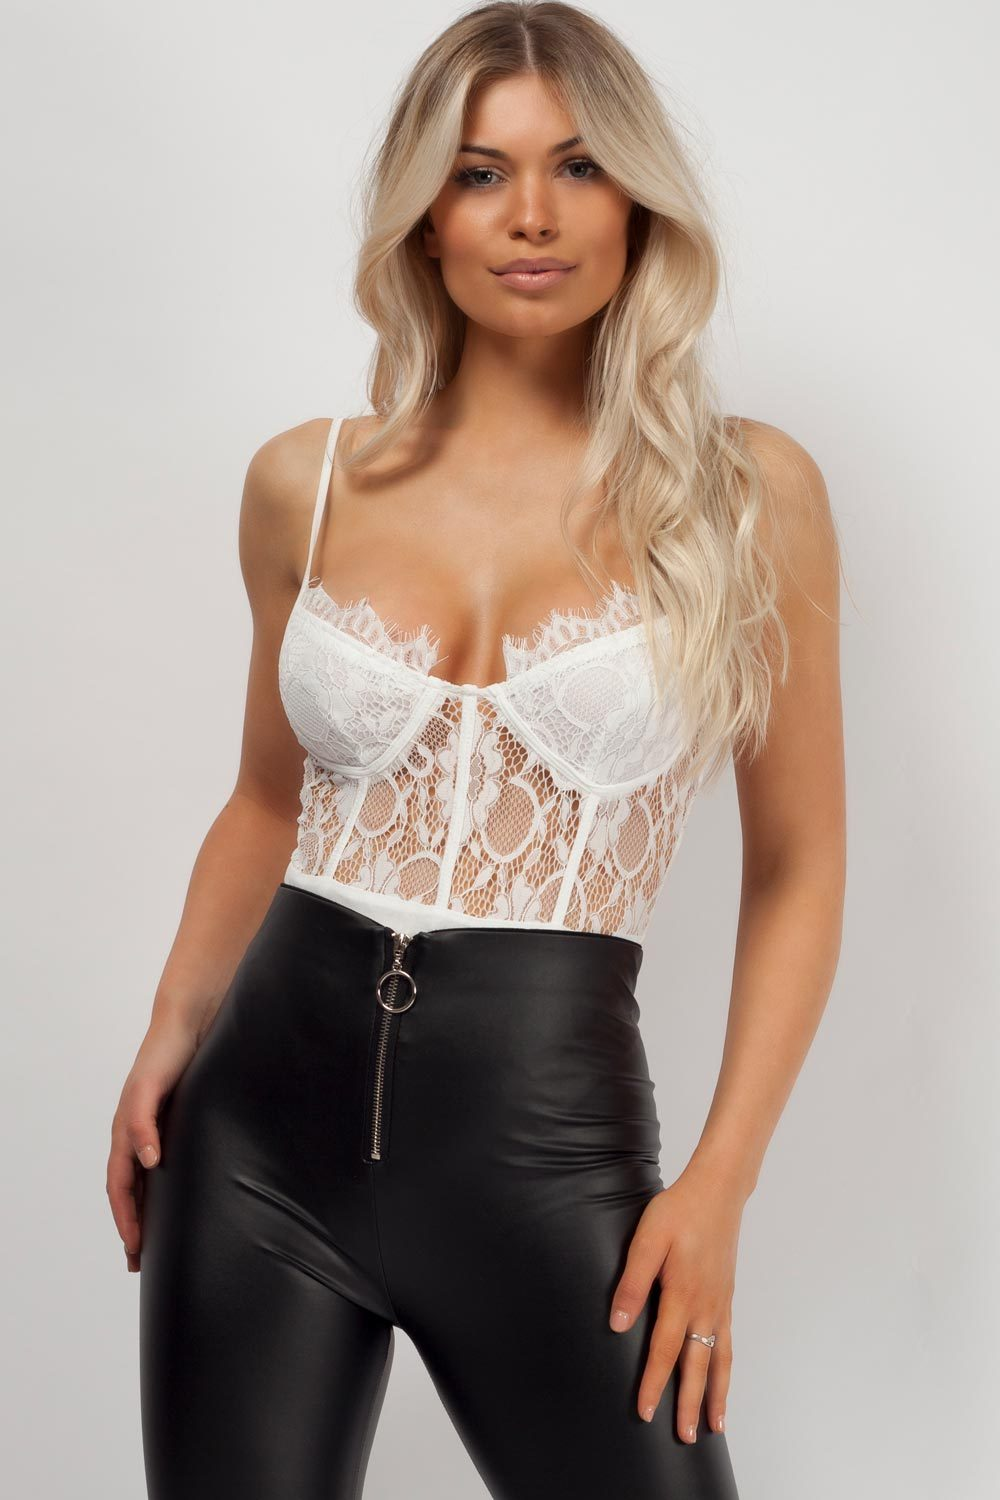 white lace bodysuit uk